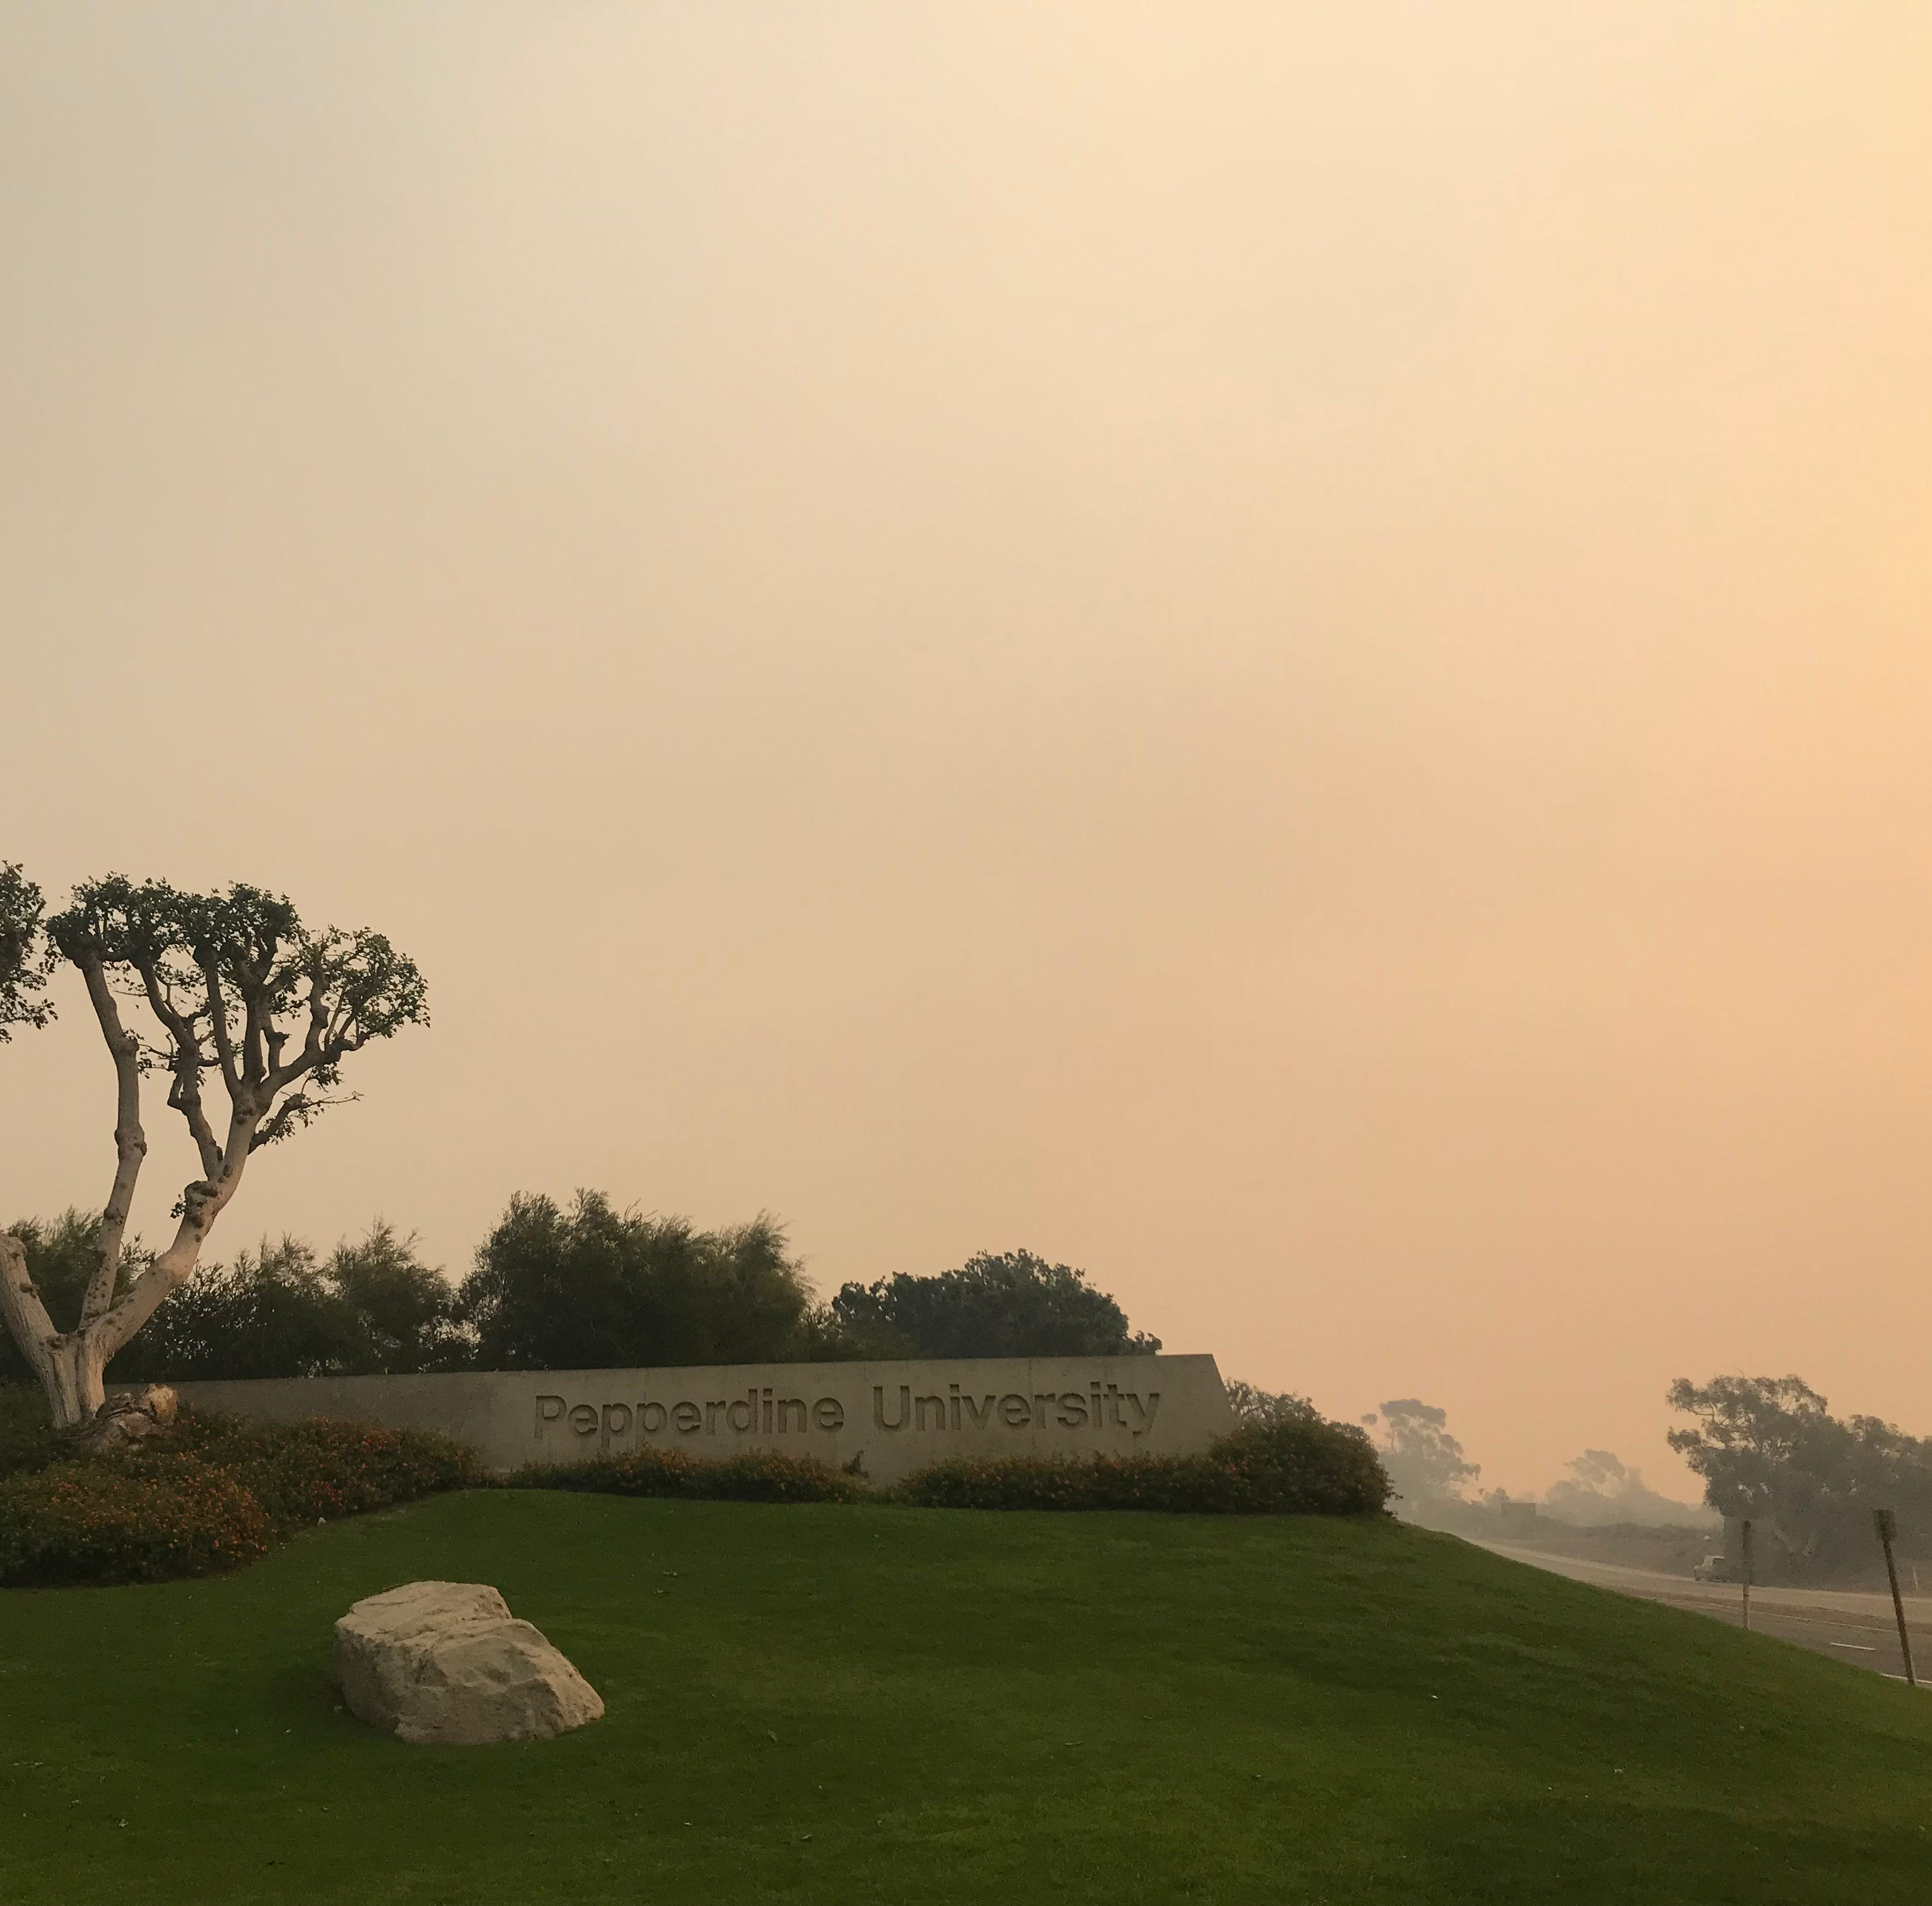 Pepperdine University: Here's what happened during the Woolsey Fire